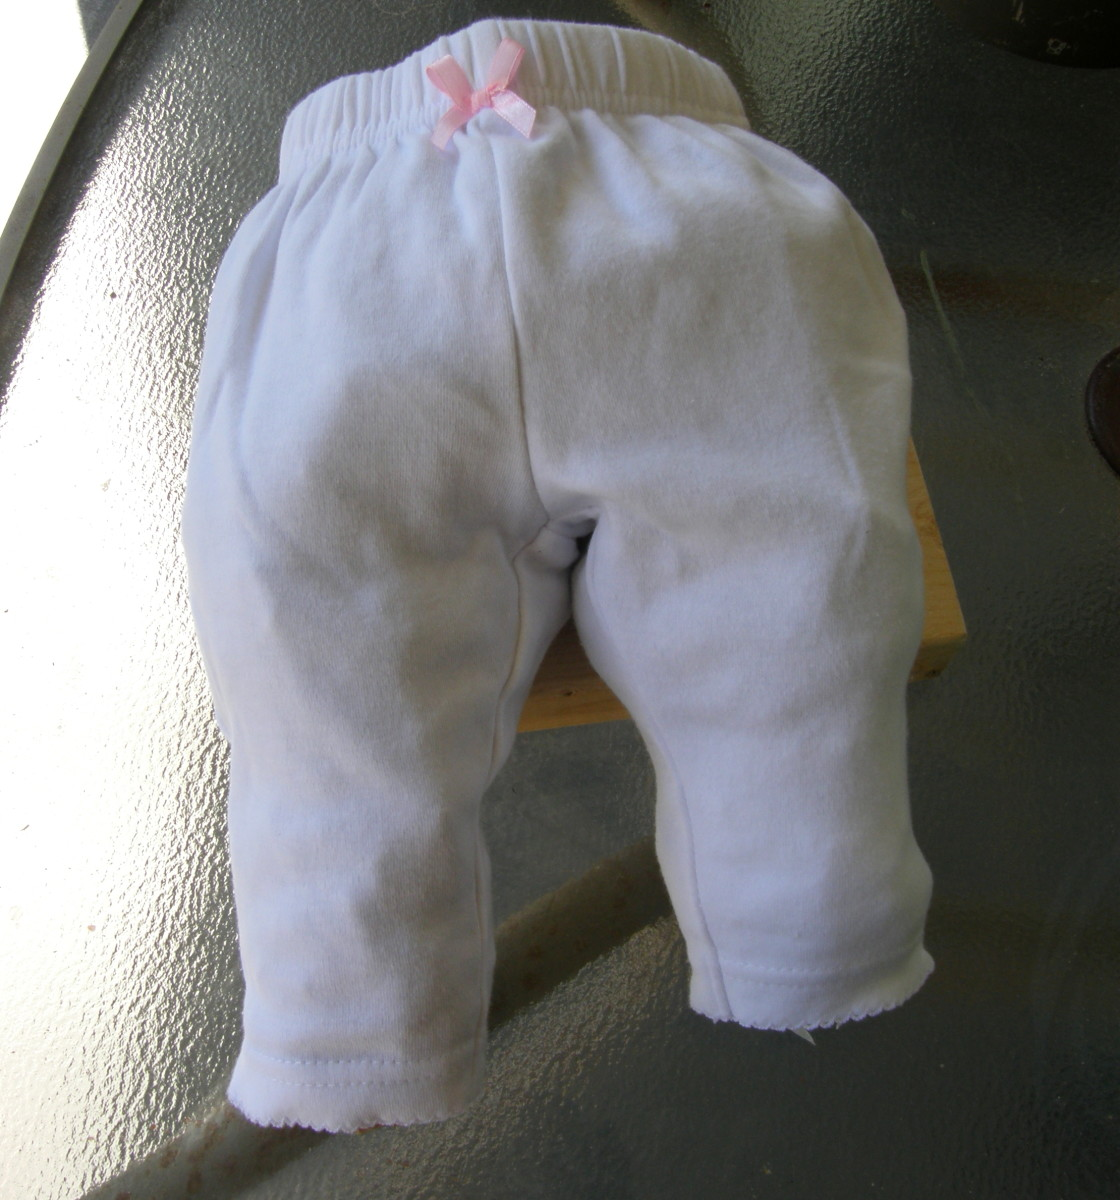 I decided to preserve a small pair of pants that my granddaughter no longer wears. I am doing this as a free-standing sculpture.